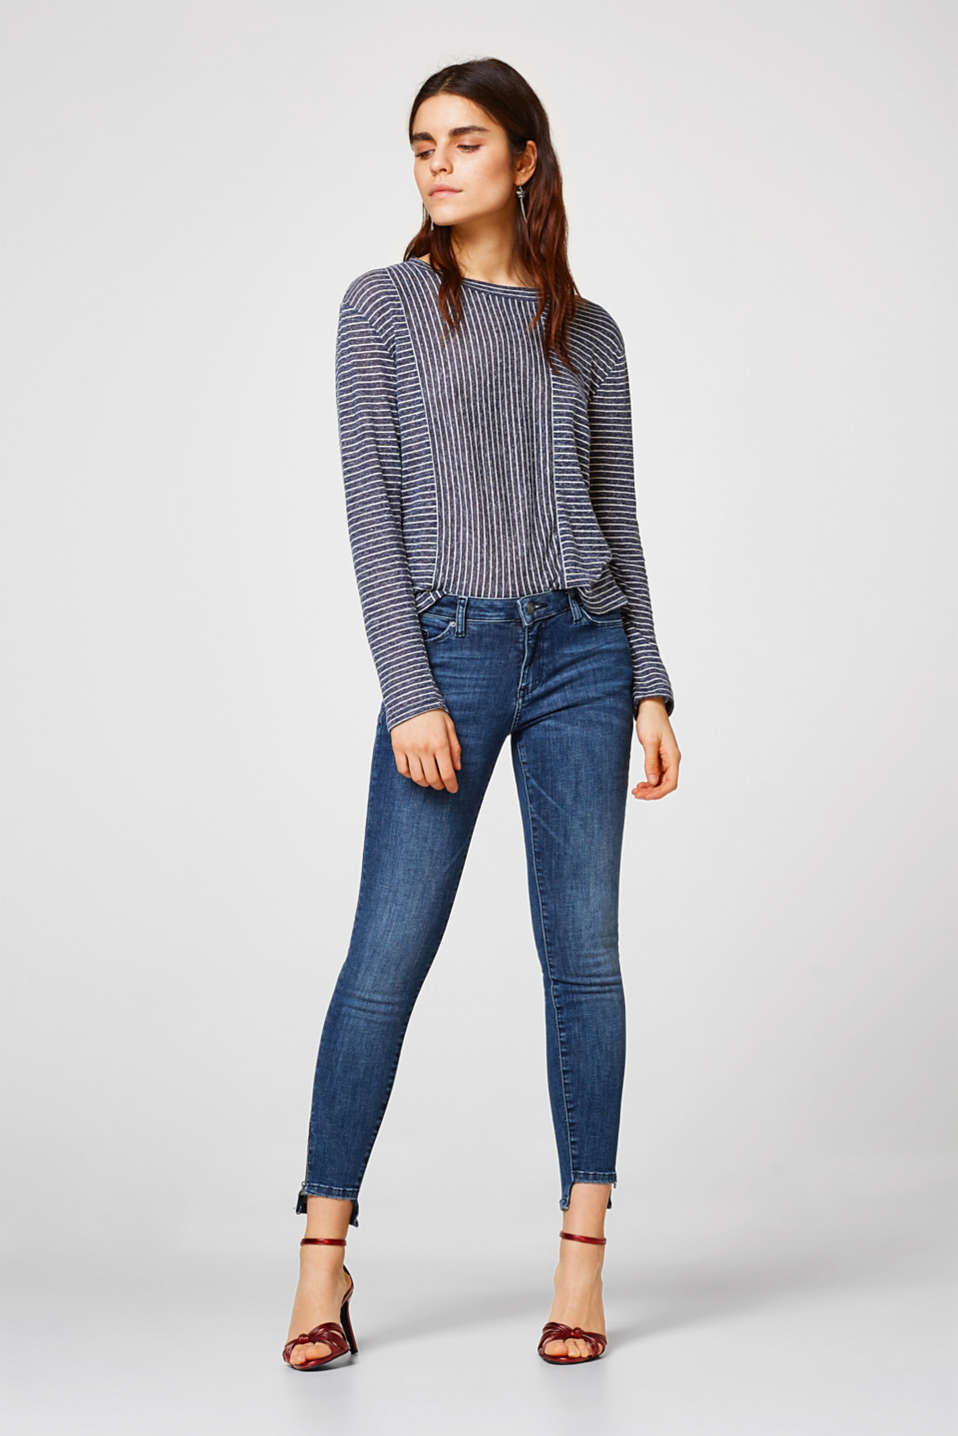 Airy, boxy long sleeve top + mixed stripes